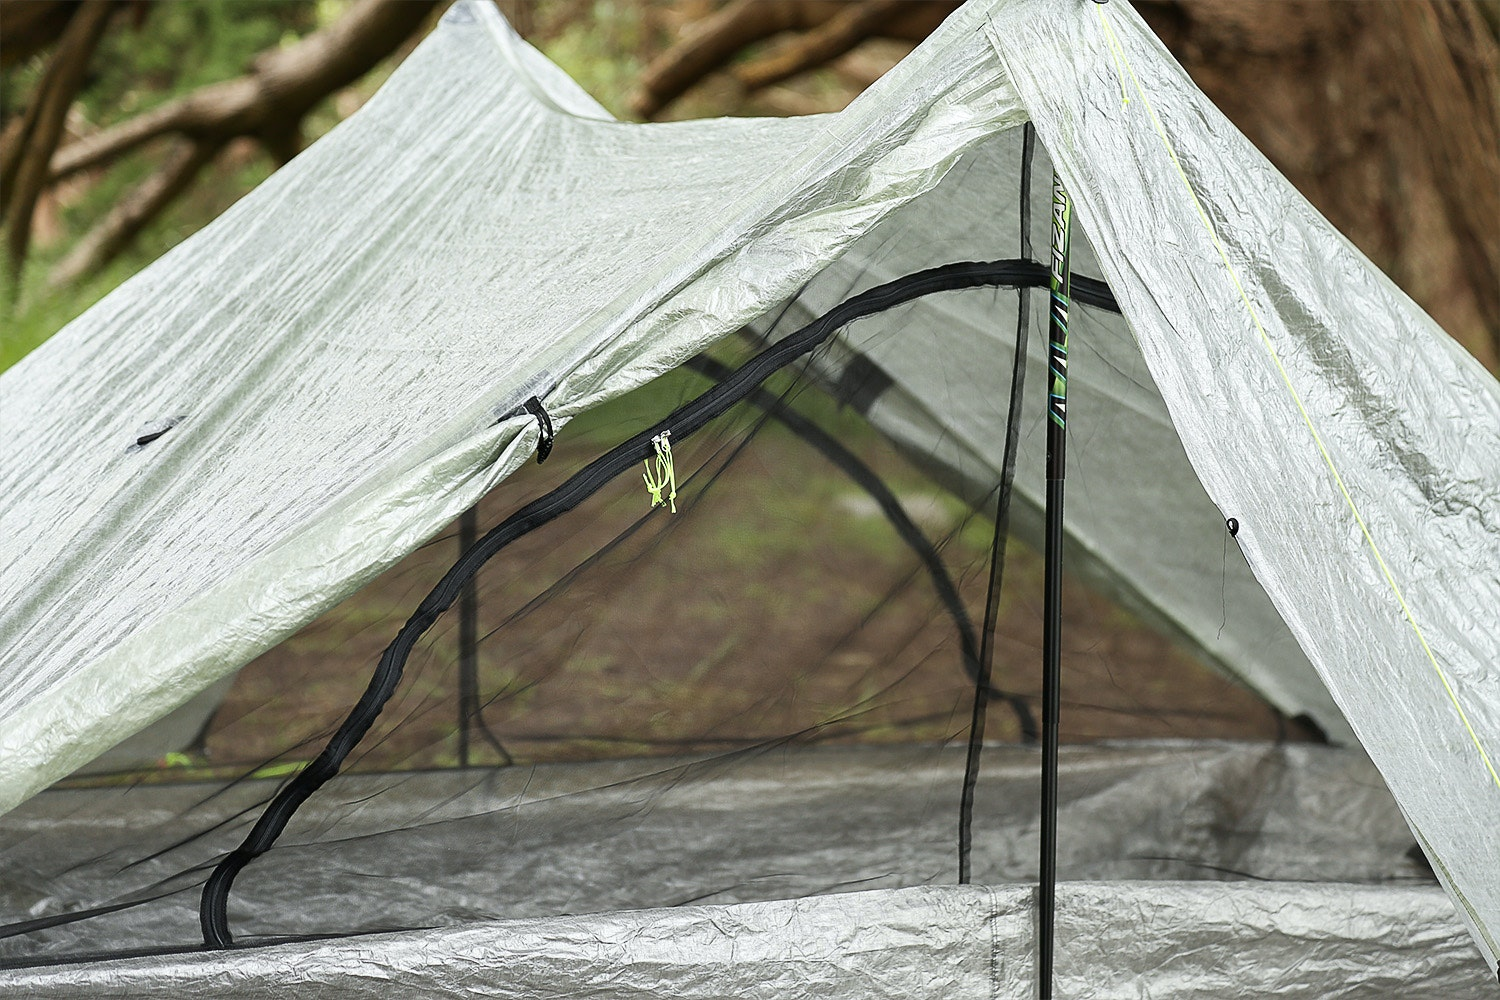 ZPacks Duplex & Triplex Tents